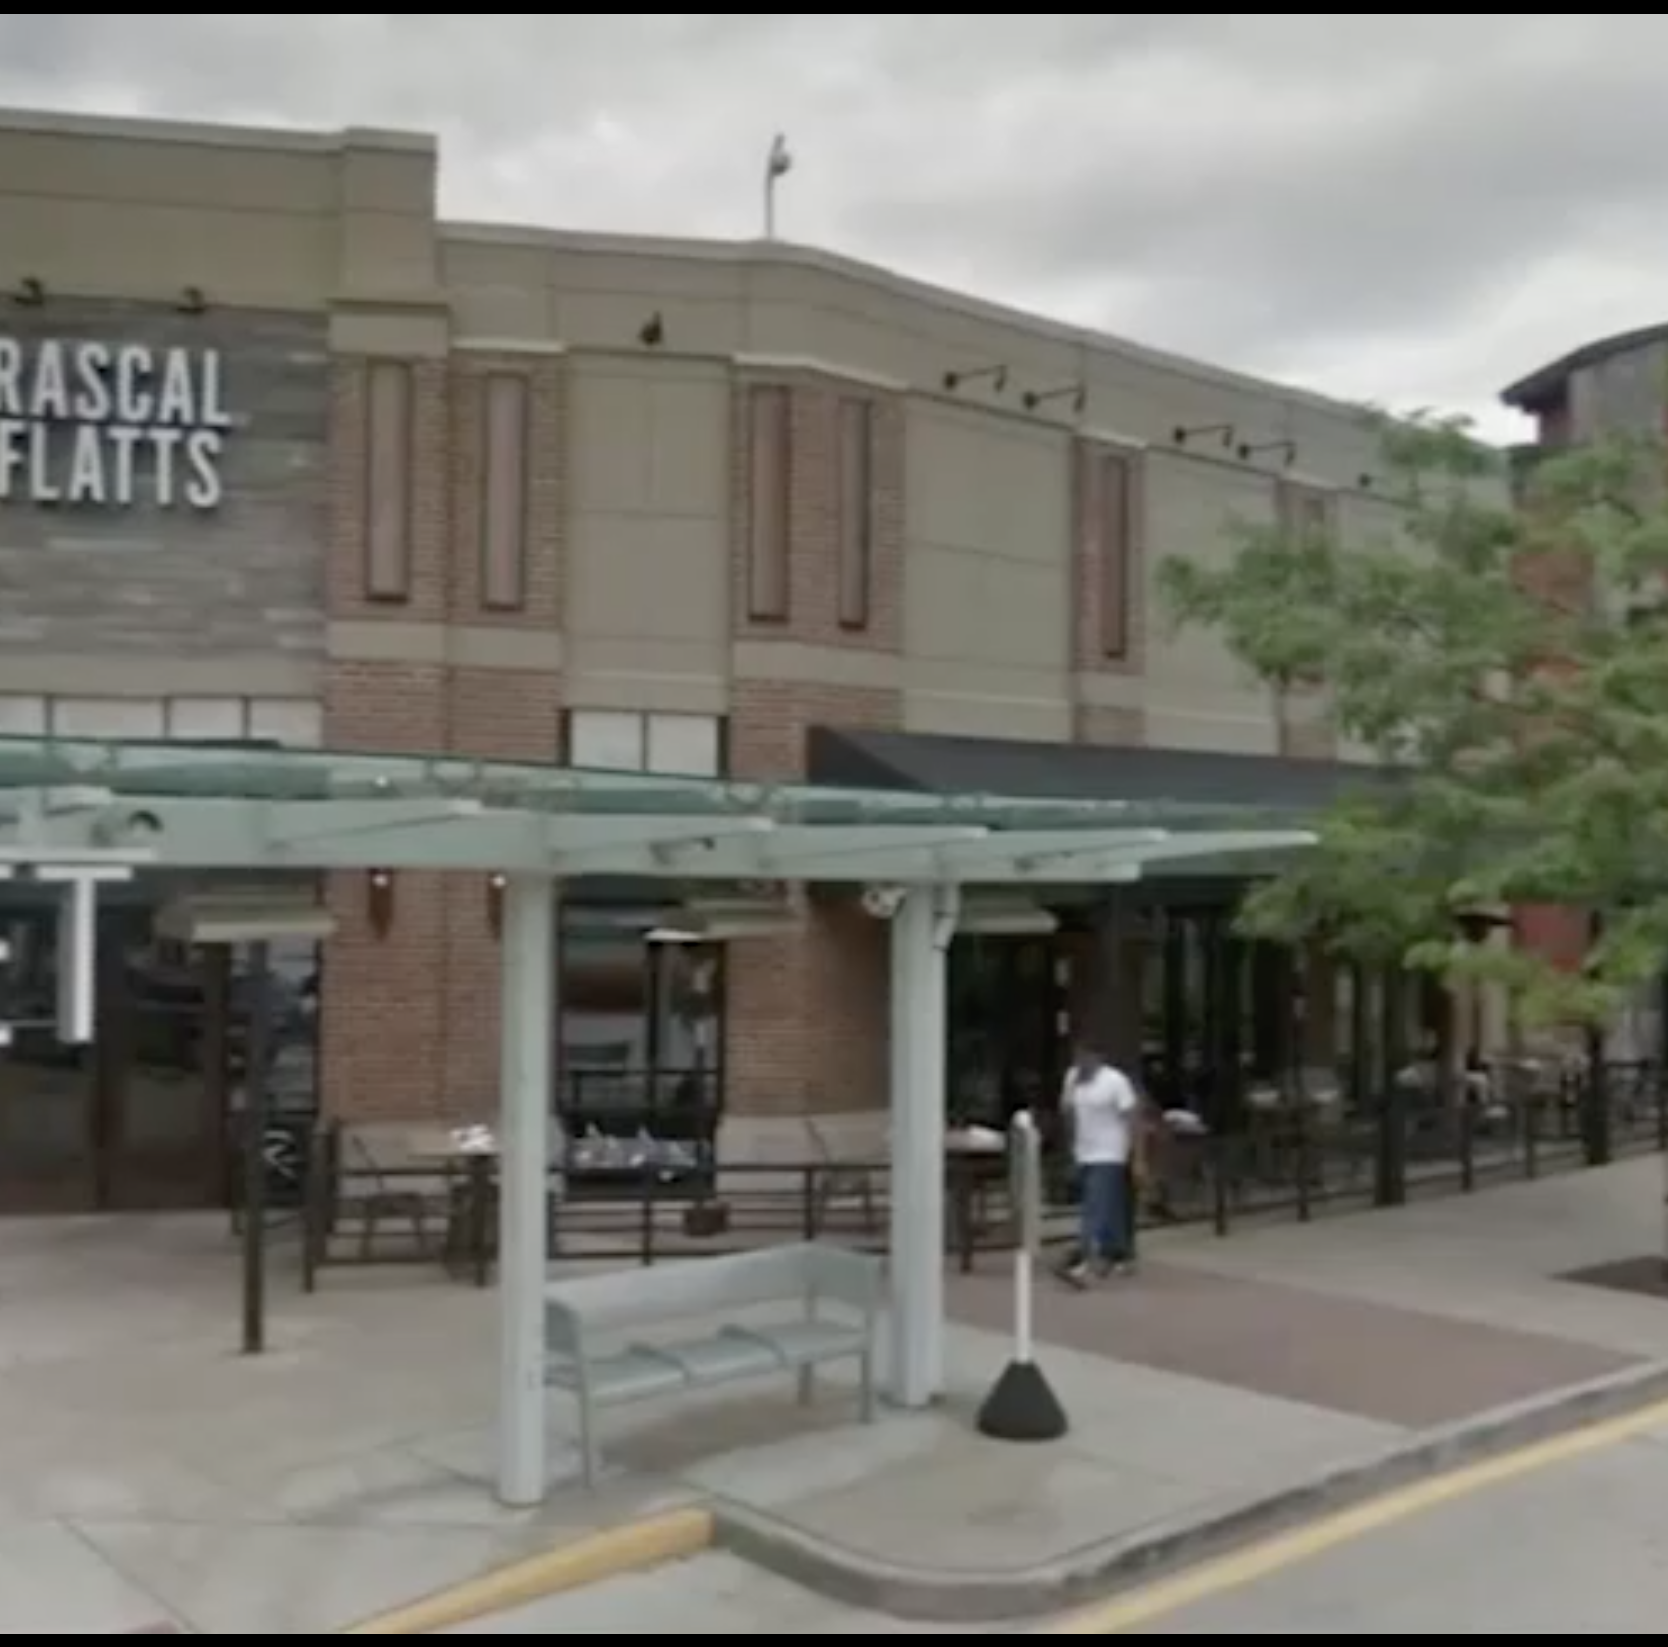 Merle Hay Mall on Rascal Flatts restaurant: 'It seemed like everything was all good'